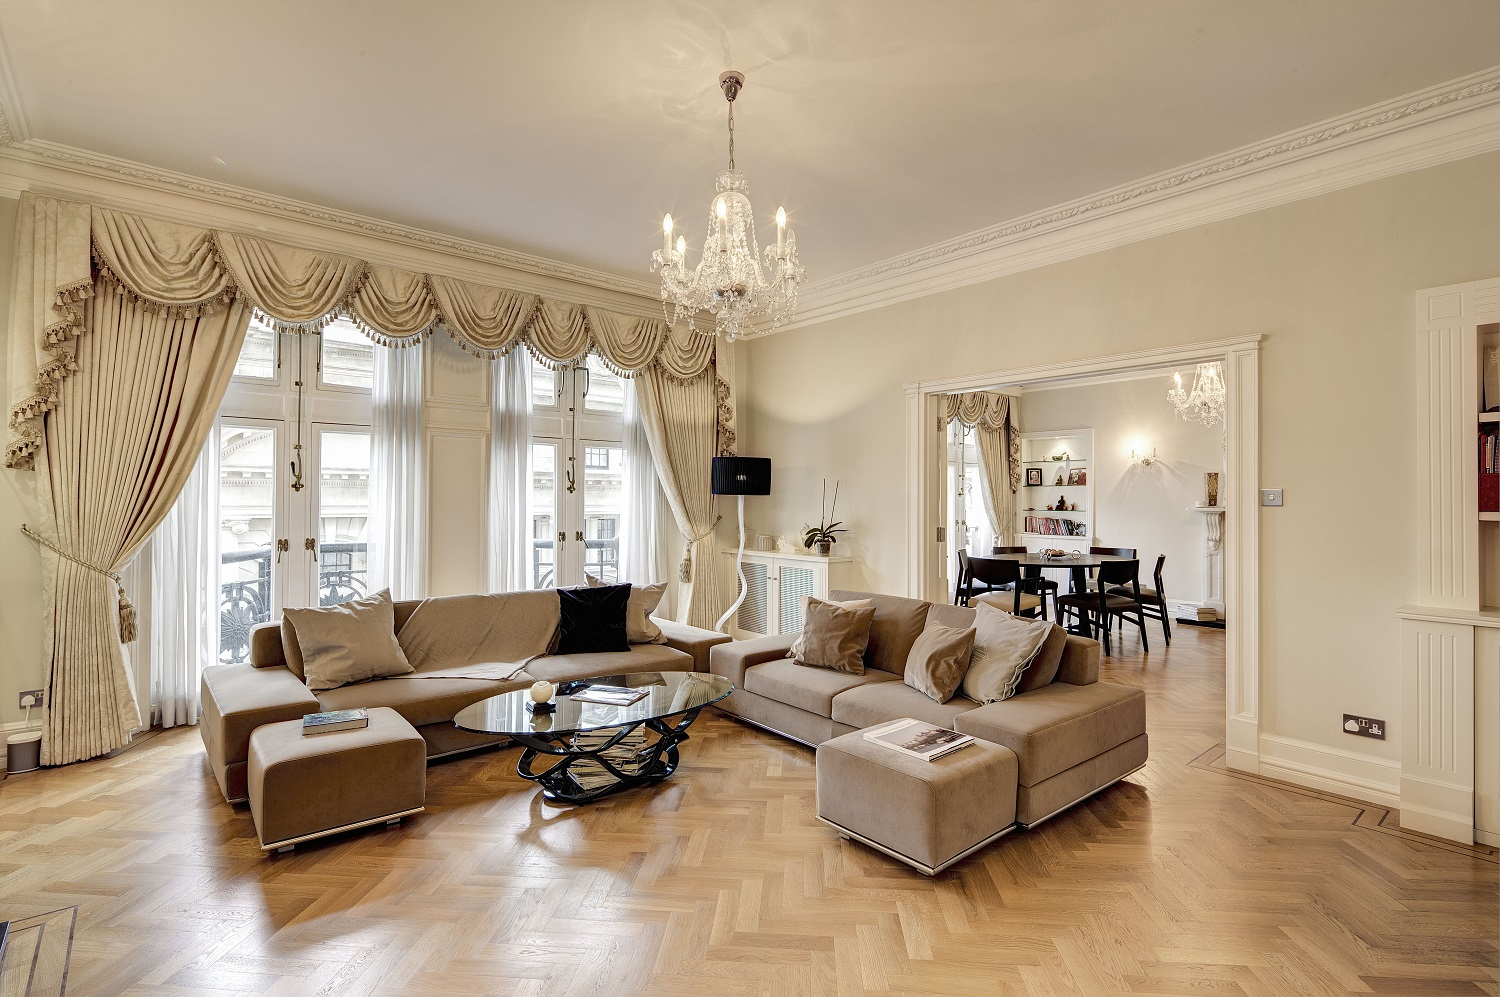 Apartment for Sale at Whitehall Court London, England, United Kingdom